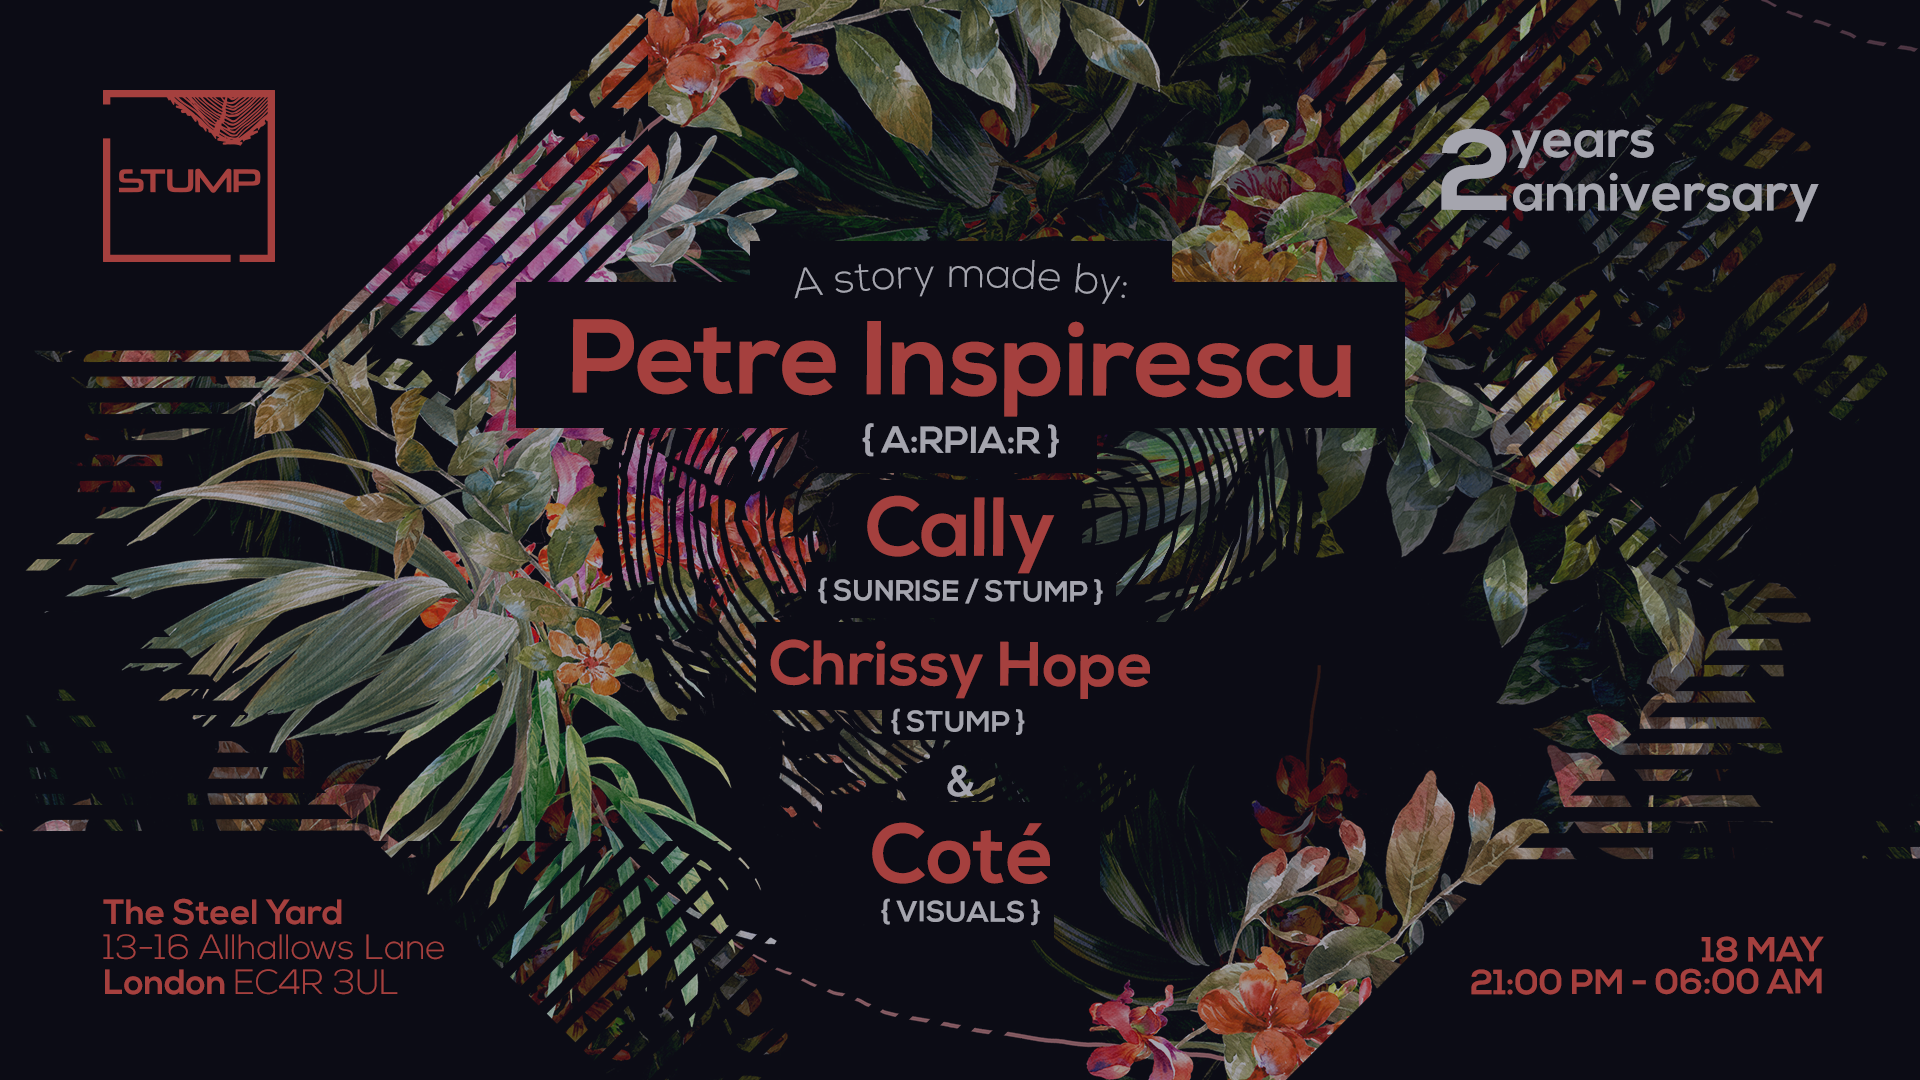 Tickets for 18-05-2018 Stump with Petre Inspirescu,Cally,Chrissy Hope,Cote